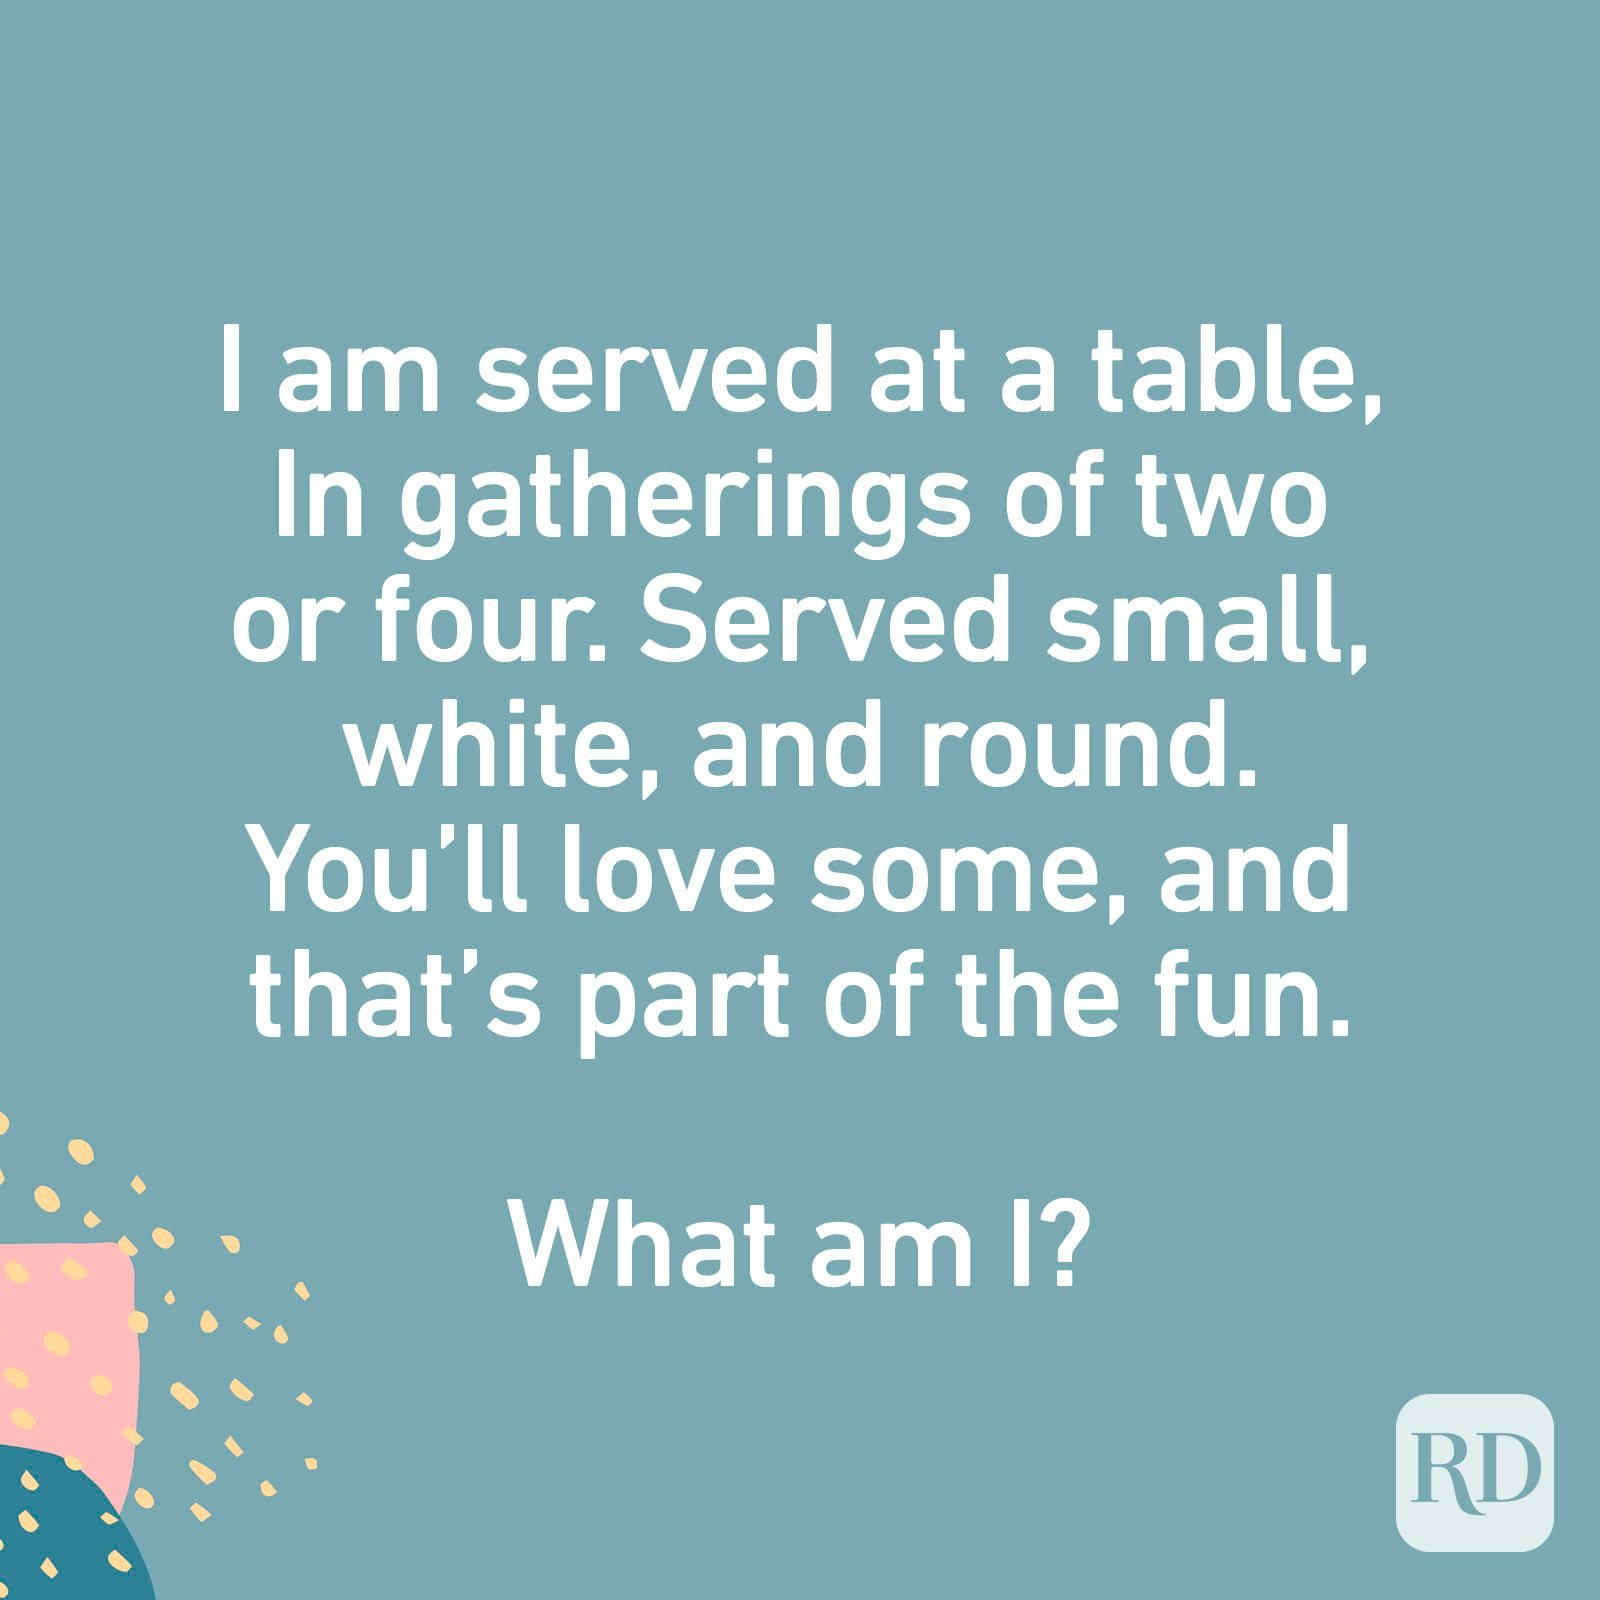 I am served at a table, In gatherings of two or four. Served small, white, and round. You'll love some, And that's part of the fun. What am I?